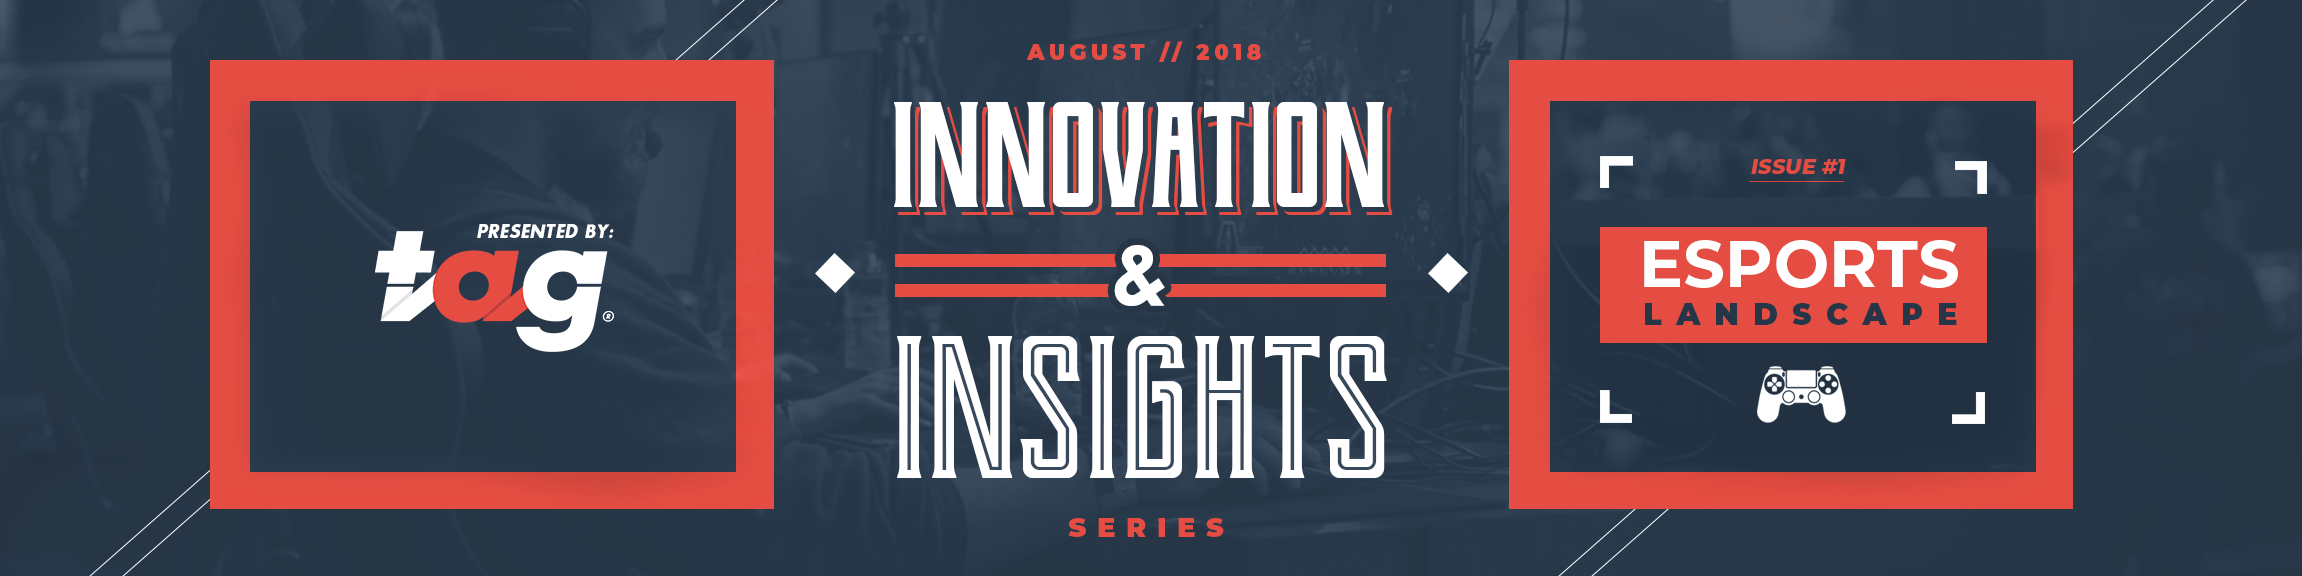 Innovation&Insights-3.png